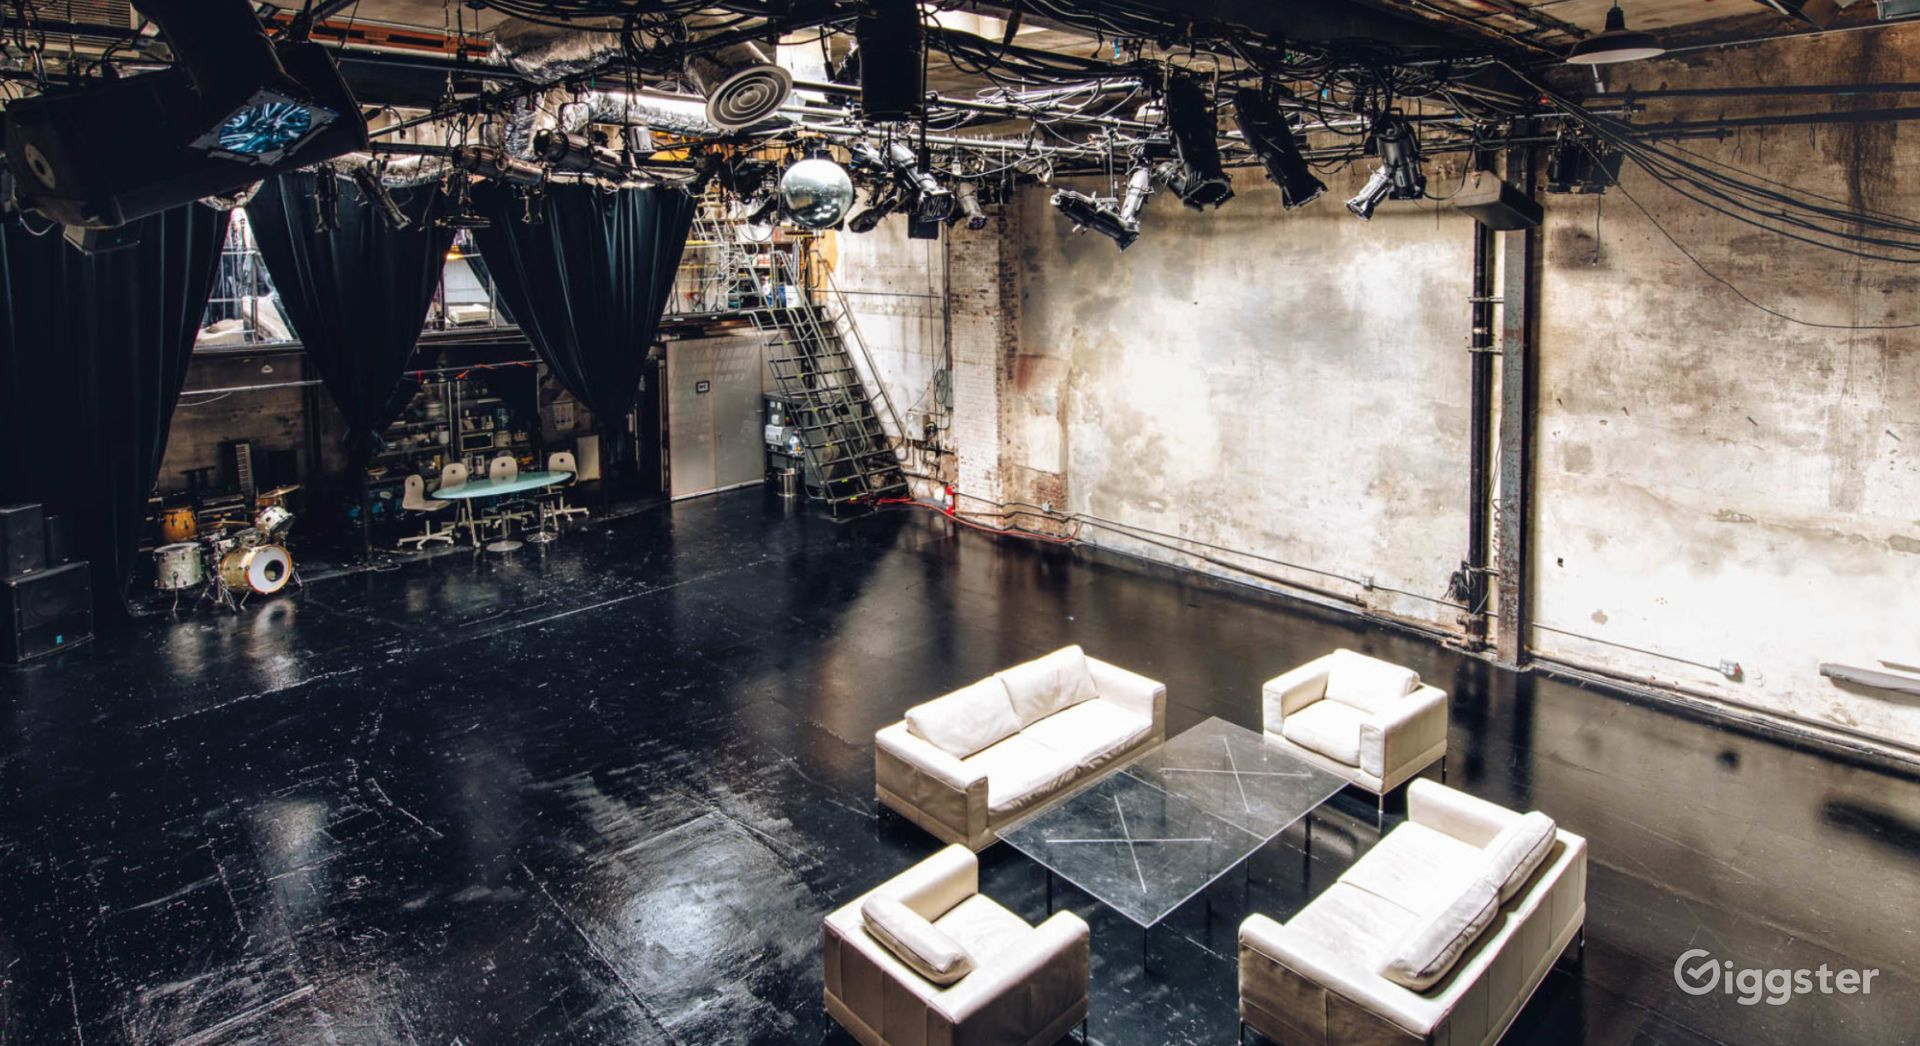 Our 2,500 square foot venue is ideal for film shoots, photo shoots, digital content creation, art/photography exhibits, and a holding area for cast/crews.